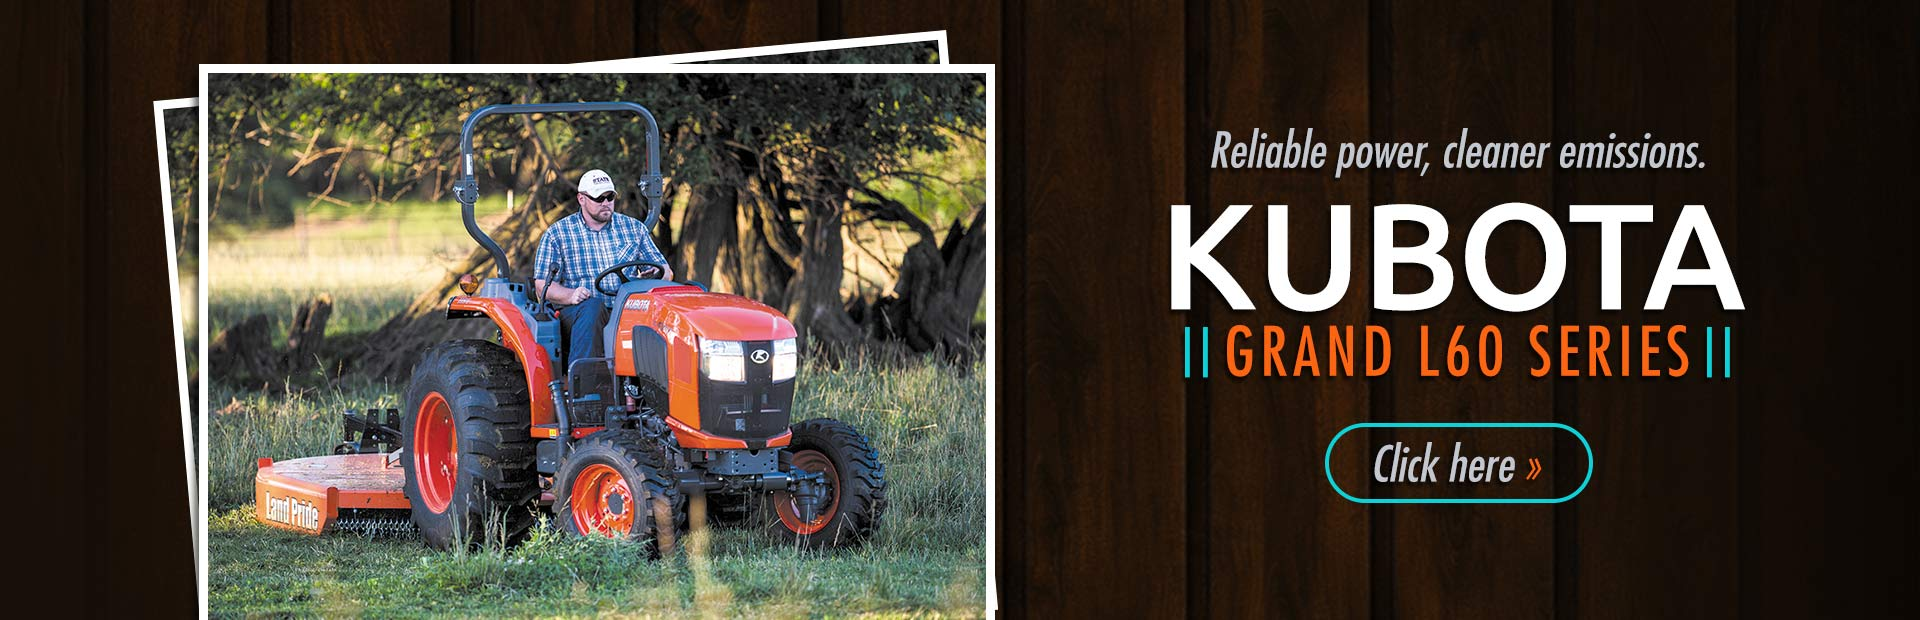 Click here to view our selection of Kubota Grand L60 series tractors!